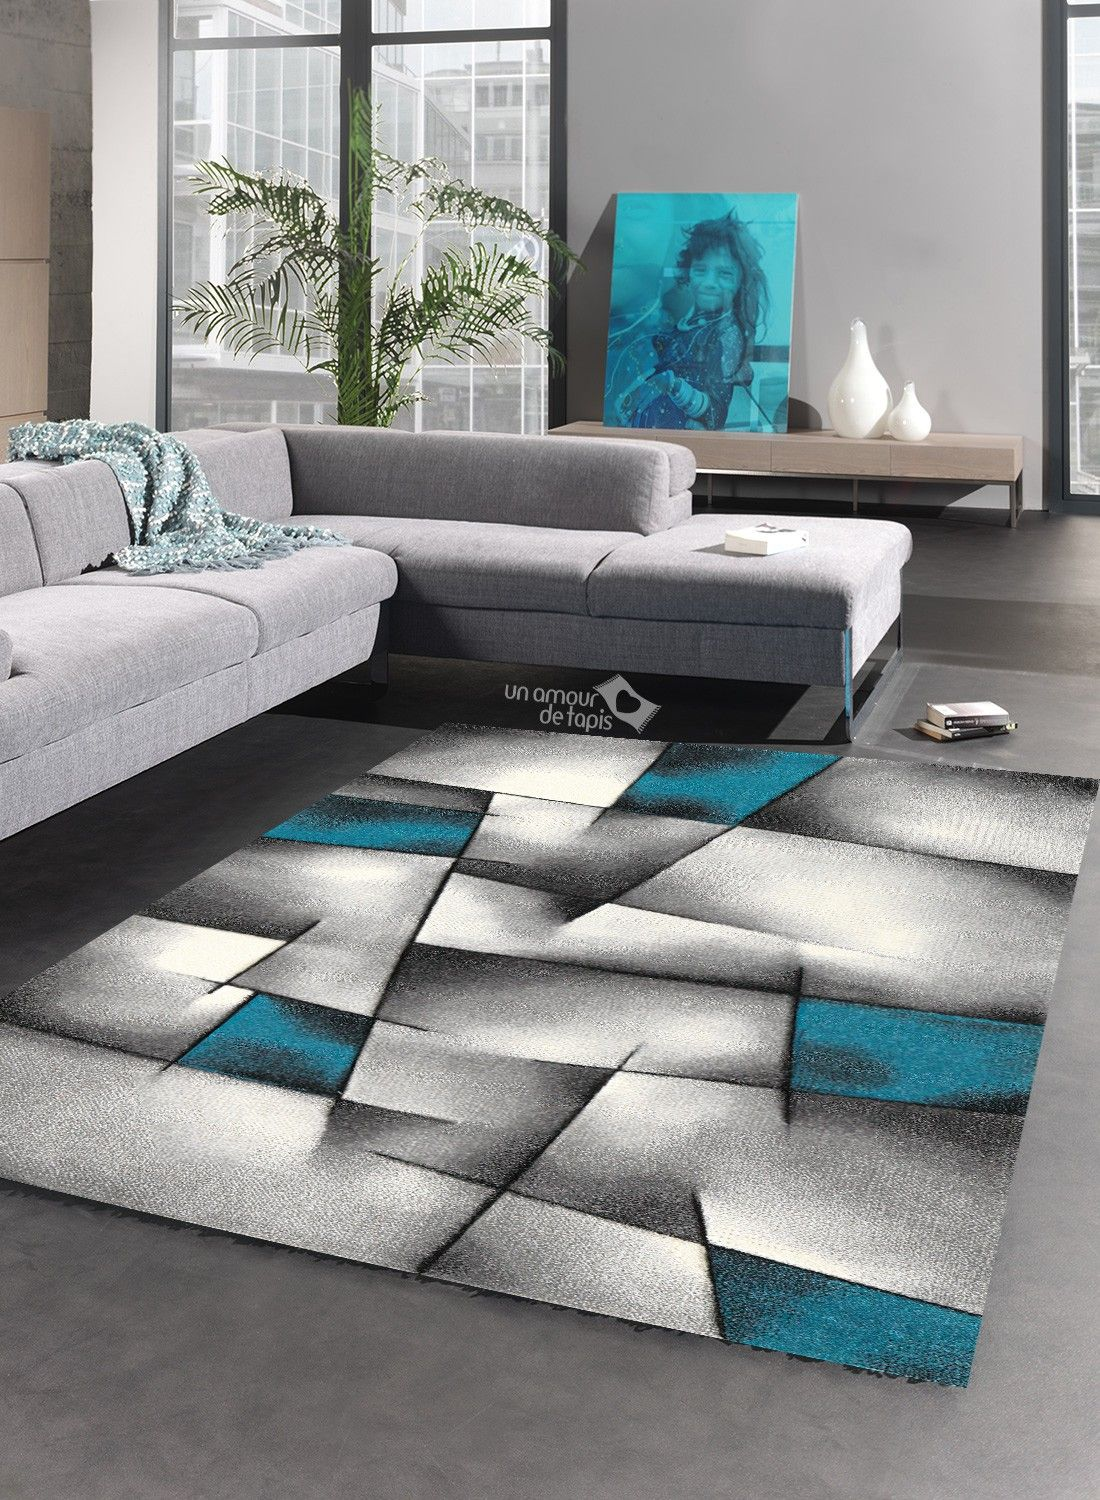 Etourdissant Tapis De Salon Bleu Teal Living Room Decor Turquoise Rug Easy Home Decor